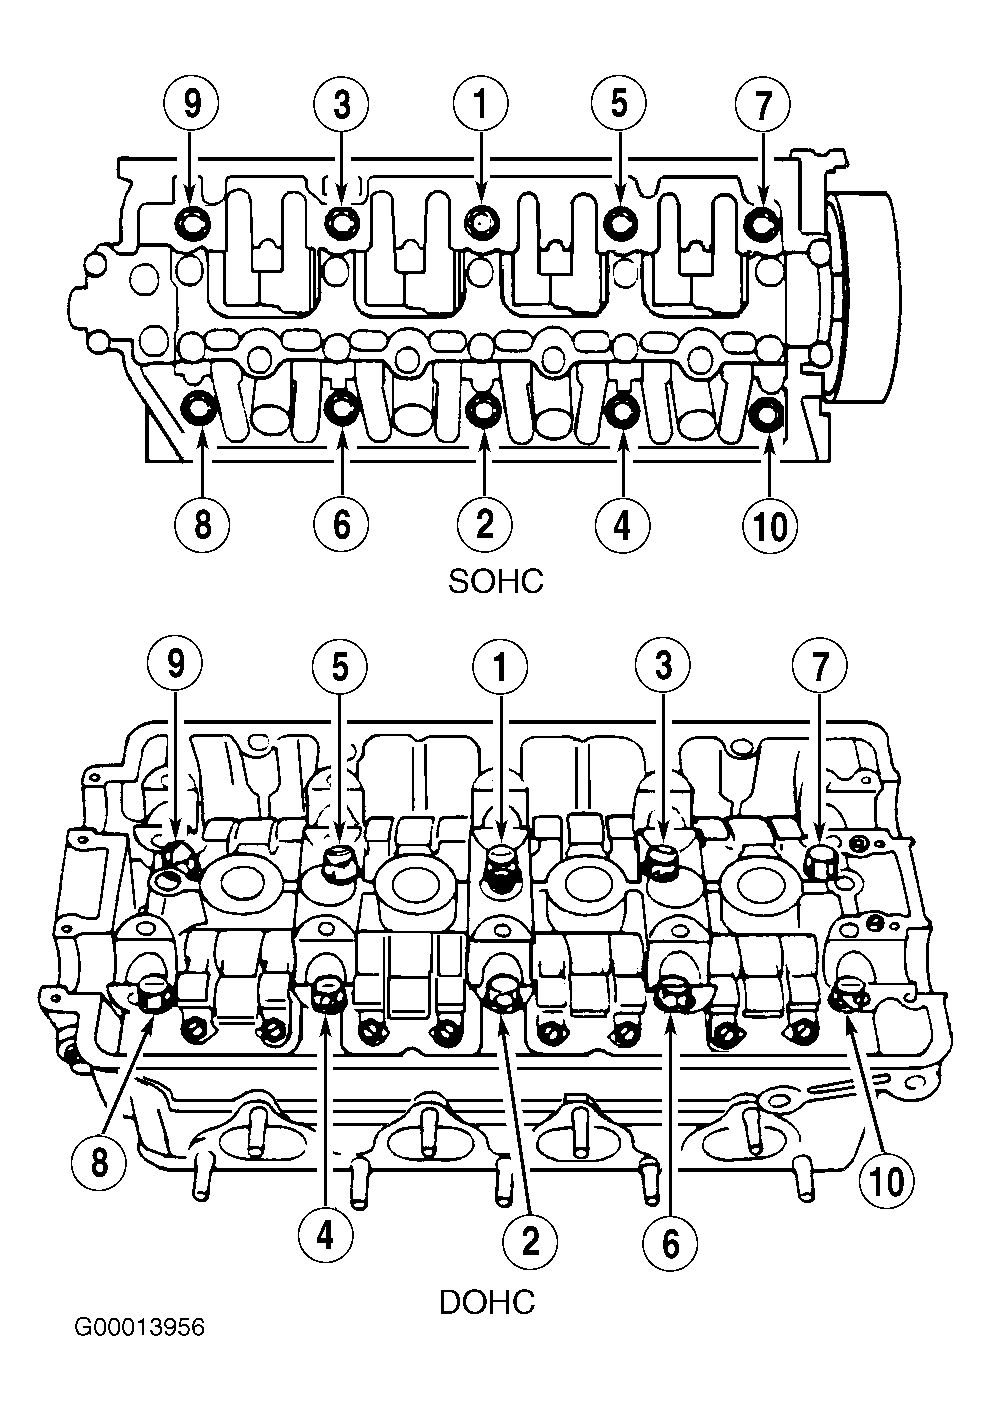 Head Cover Bolt Torque: I Have the Car Listed Above (d16y9